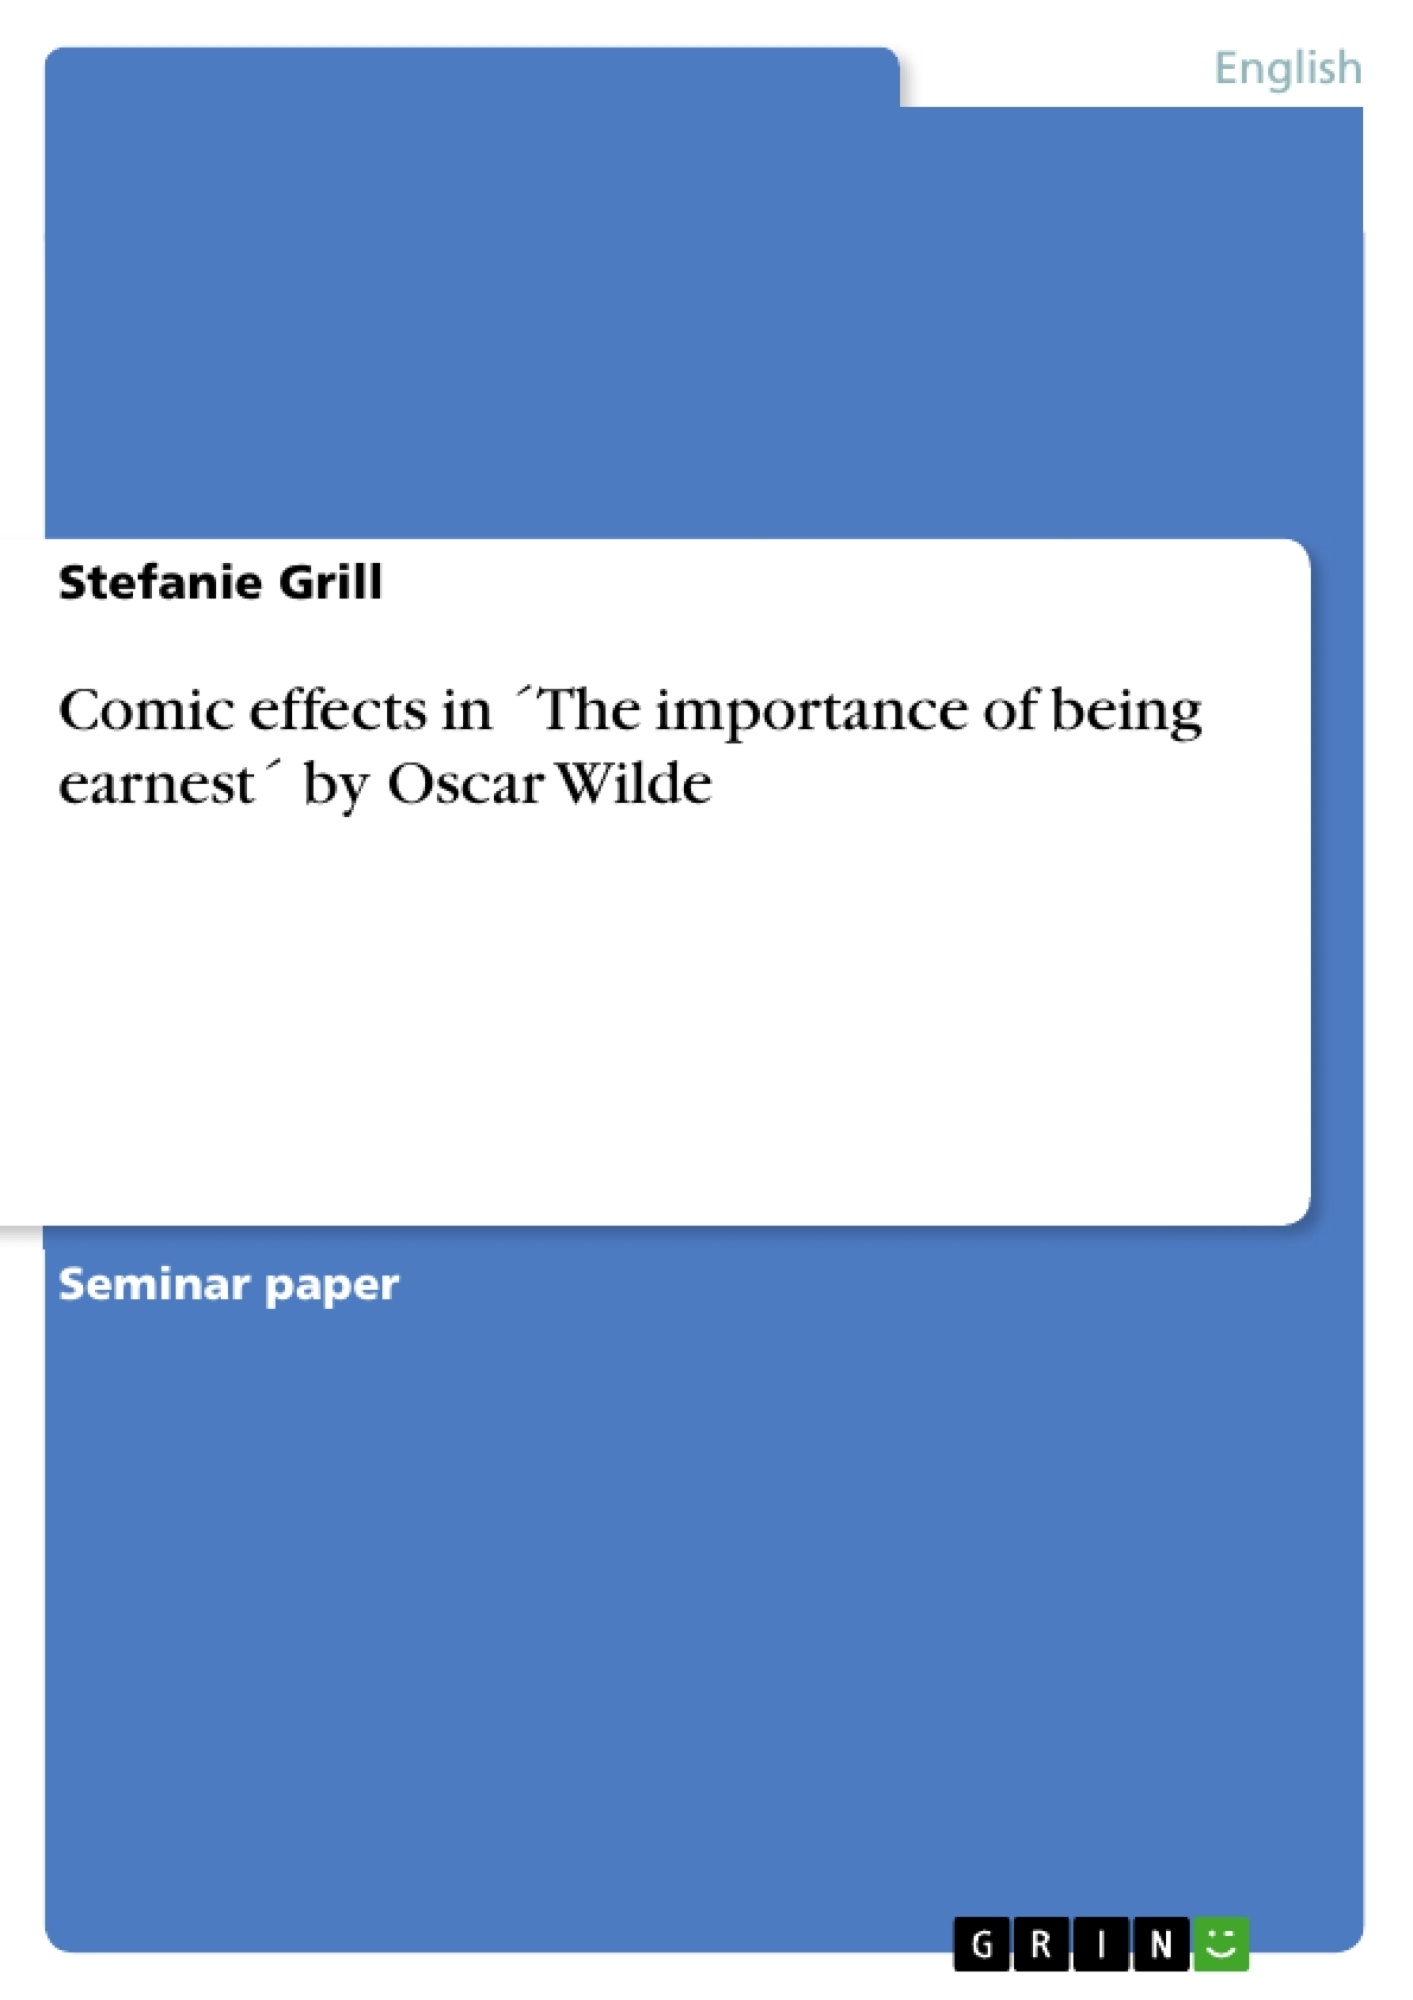 Comic Effects In The Importance Of Being Earnest By Oscar Wilde  Comic Effects In The Importance Of Being Earnest By Oscar Wilde  Publish  Your Masters Thesis Bachelors Thesis Essay Or Term Paper